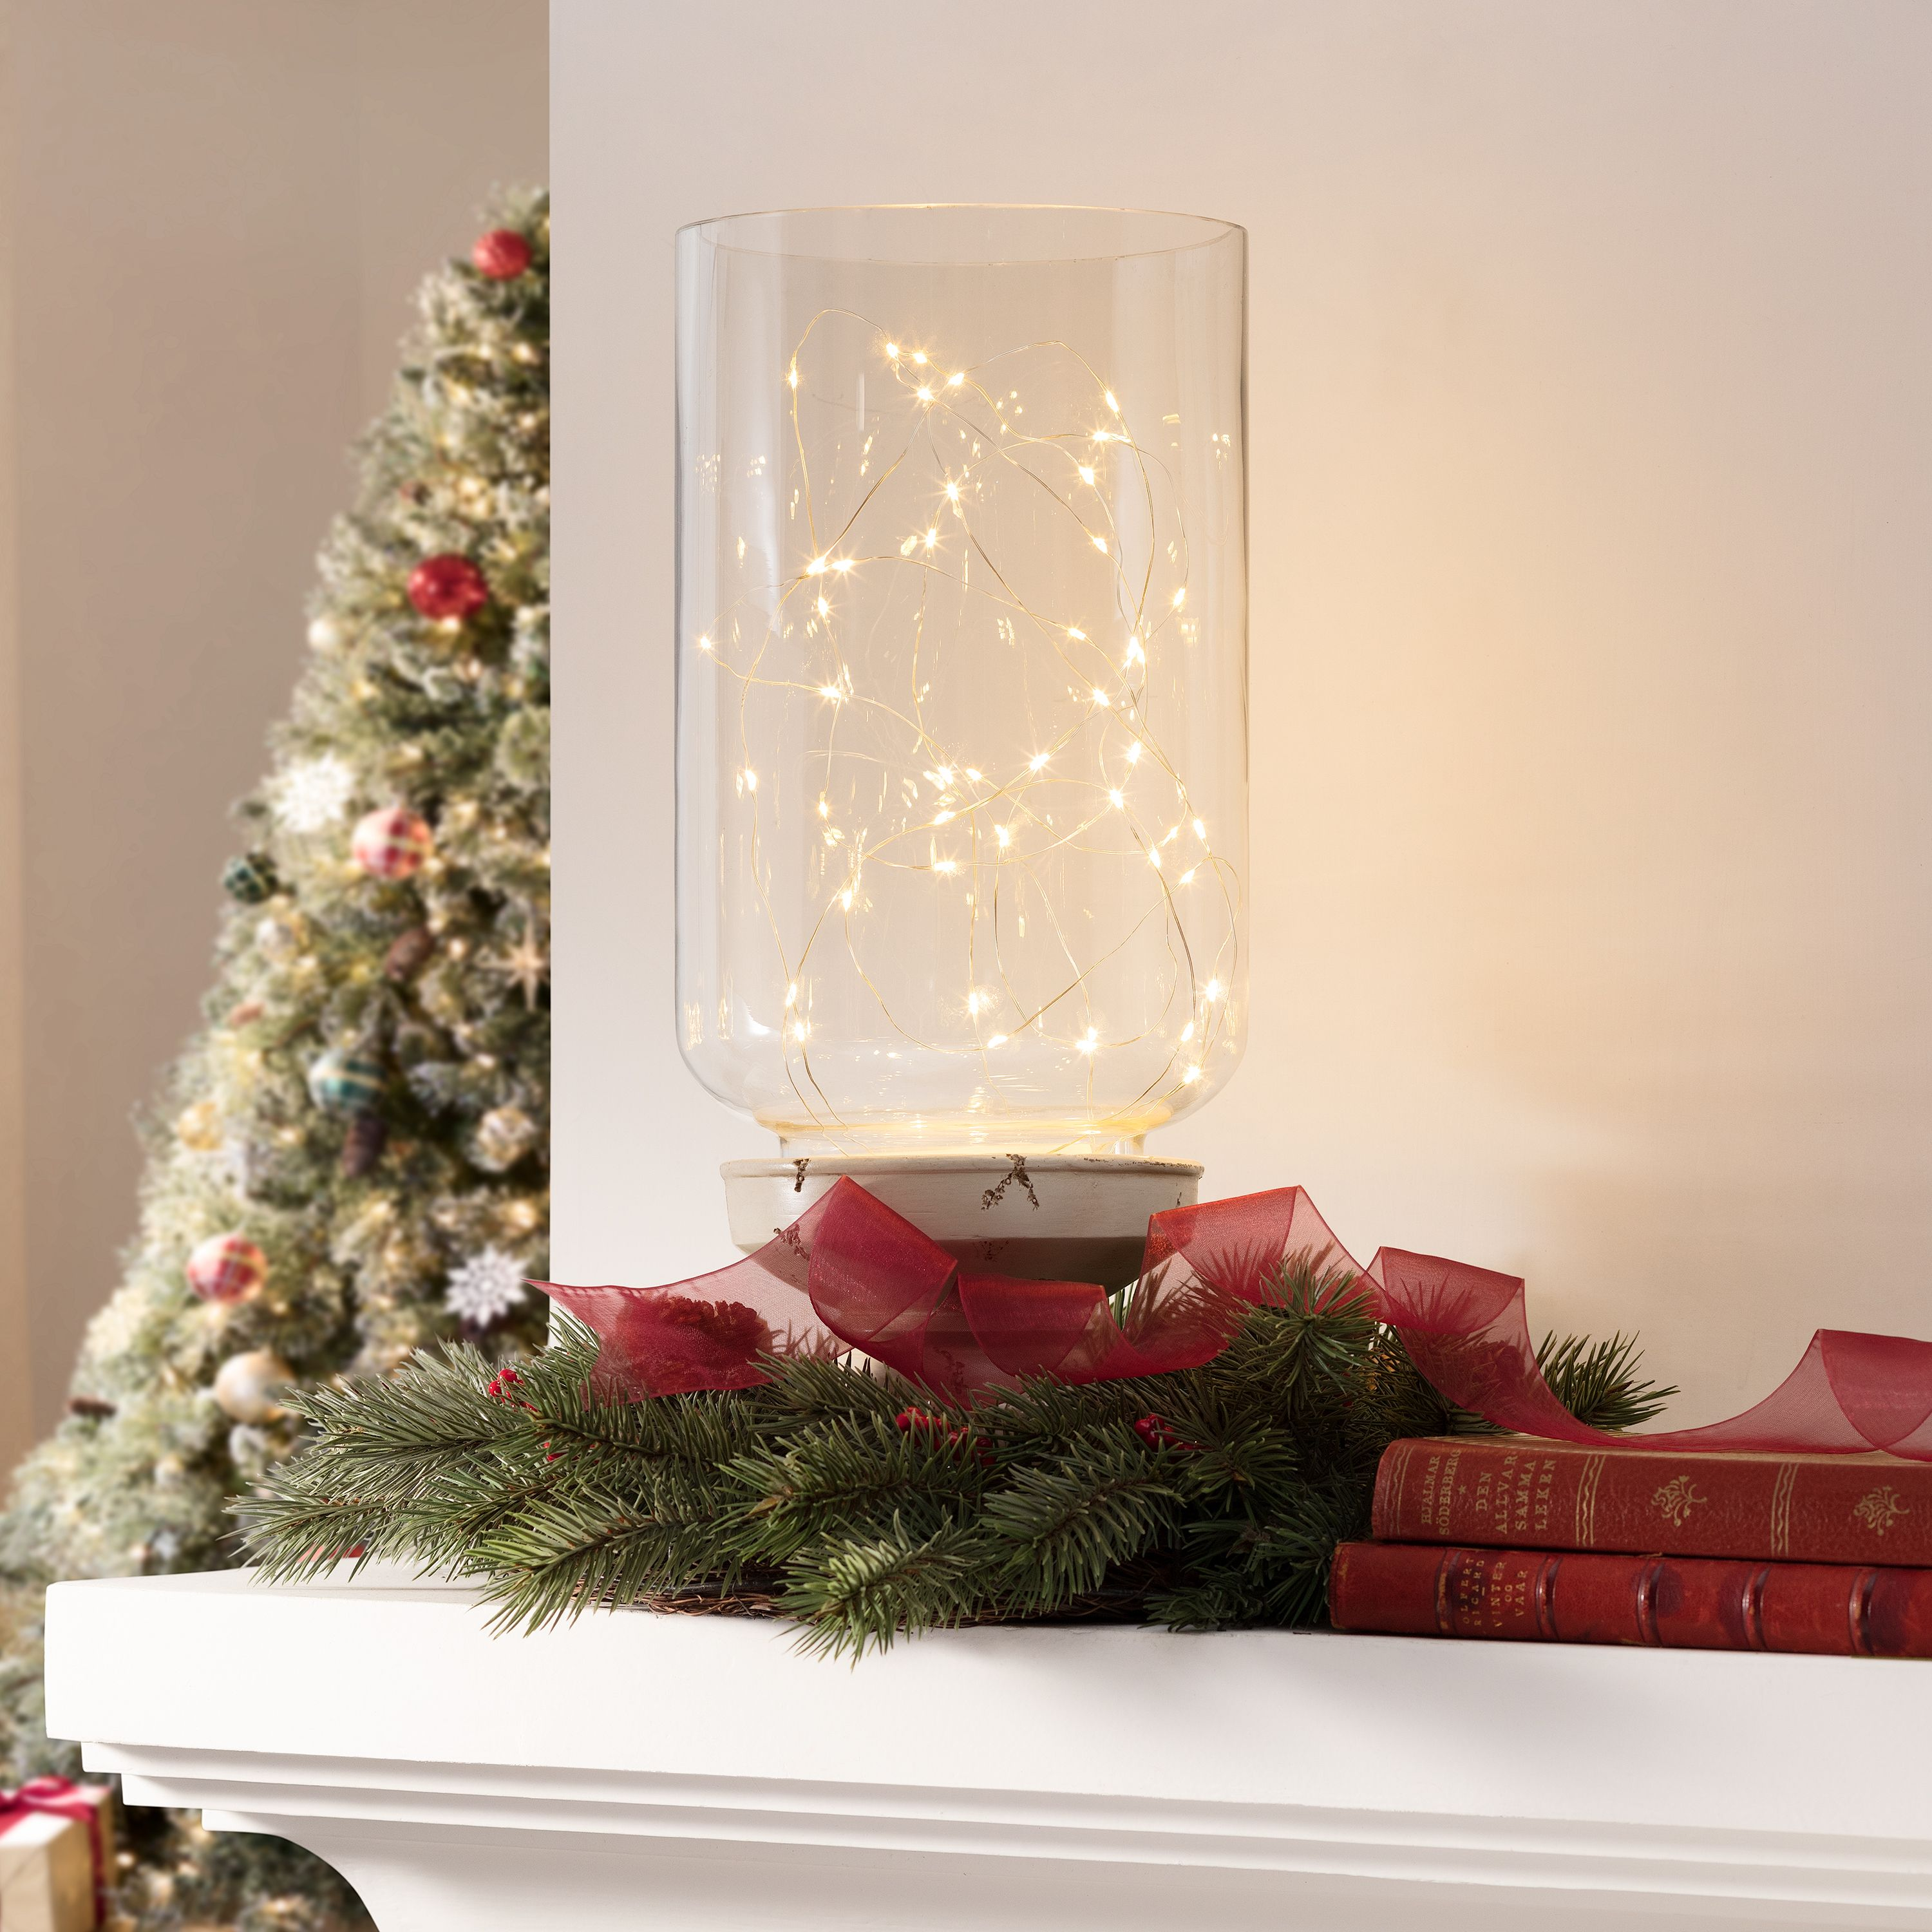 PDQ 50 BeatSync Sound-Activated String Lights, 50, Warm White, 12' 2.4